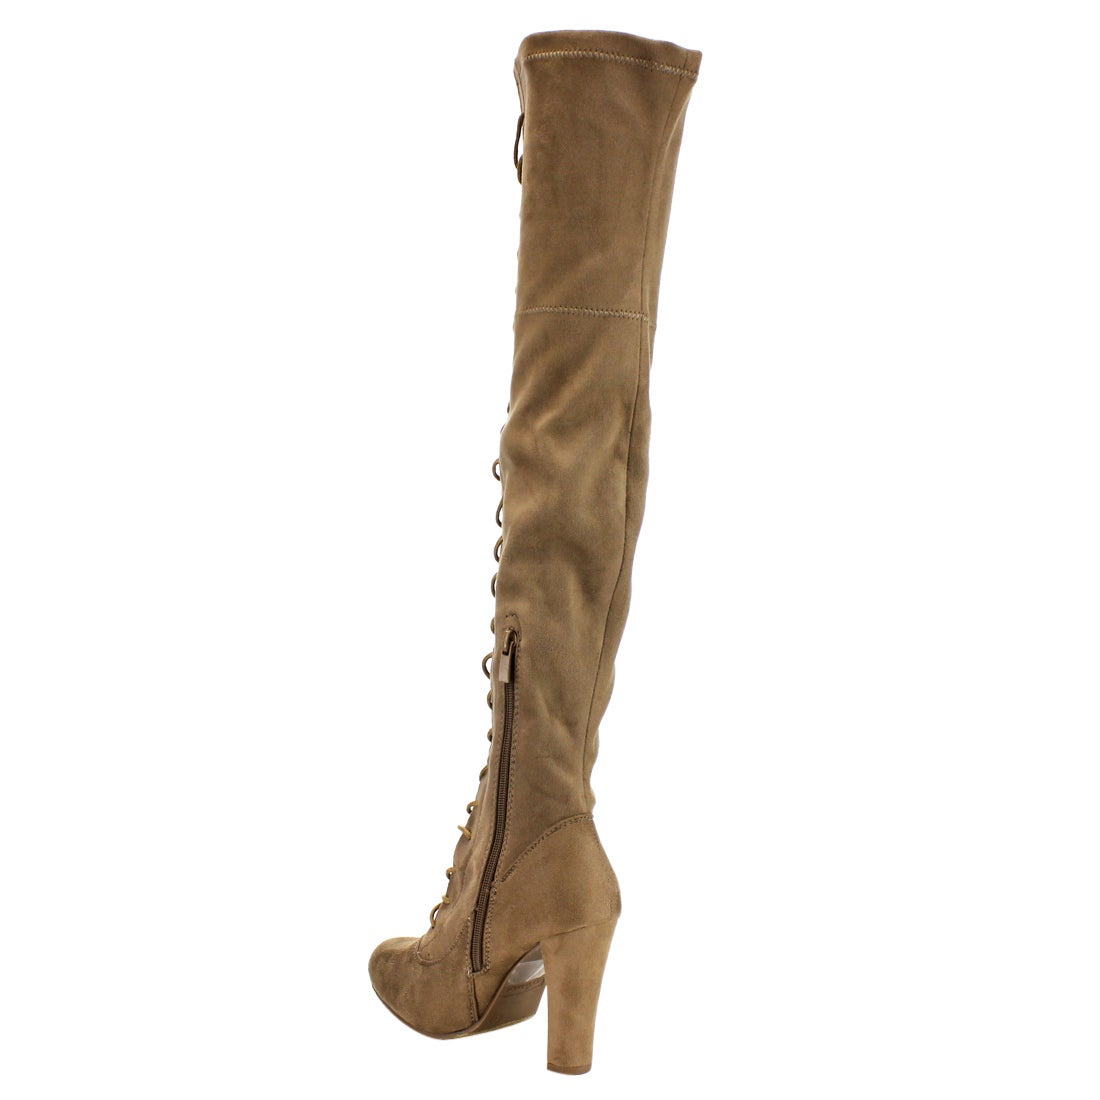 b0c97541fdc Shop Forever Women s IC17 Taupe Faux-suede Lace-up Wrapped-heel Over-the-knee  Boots - Free Shipping Today - Overstock.com - 13808177